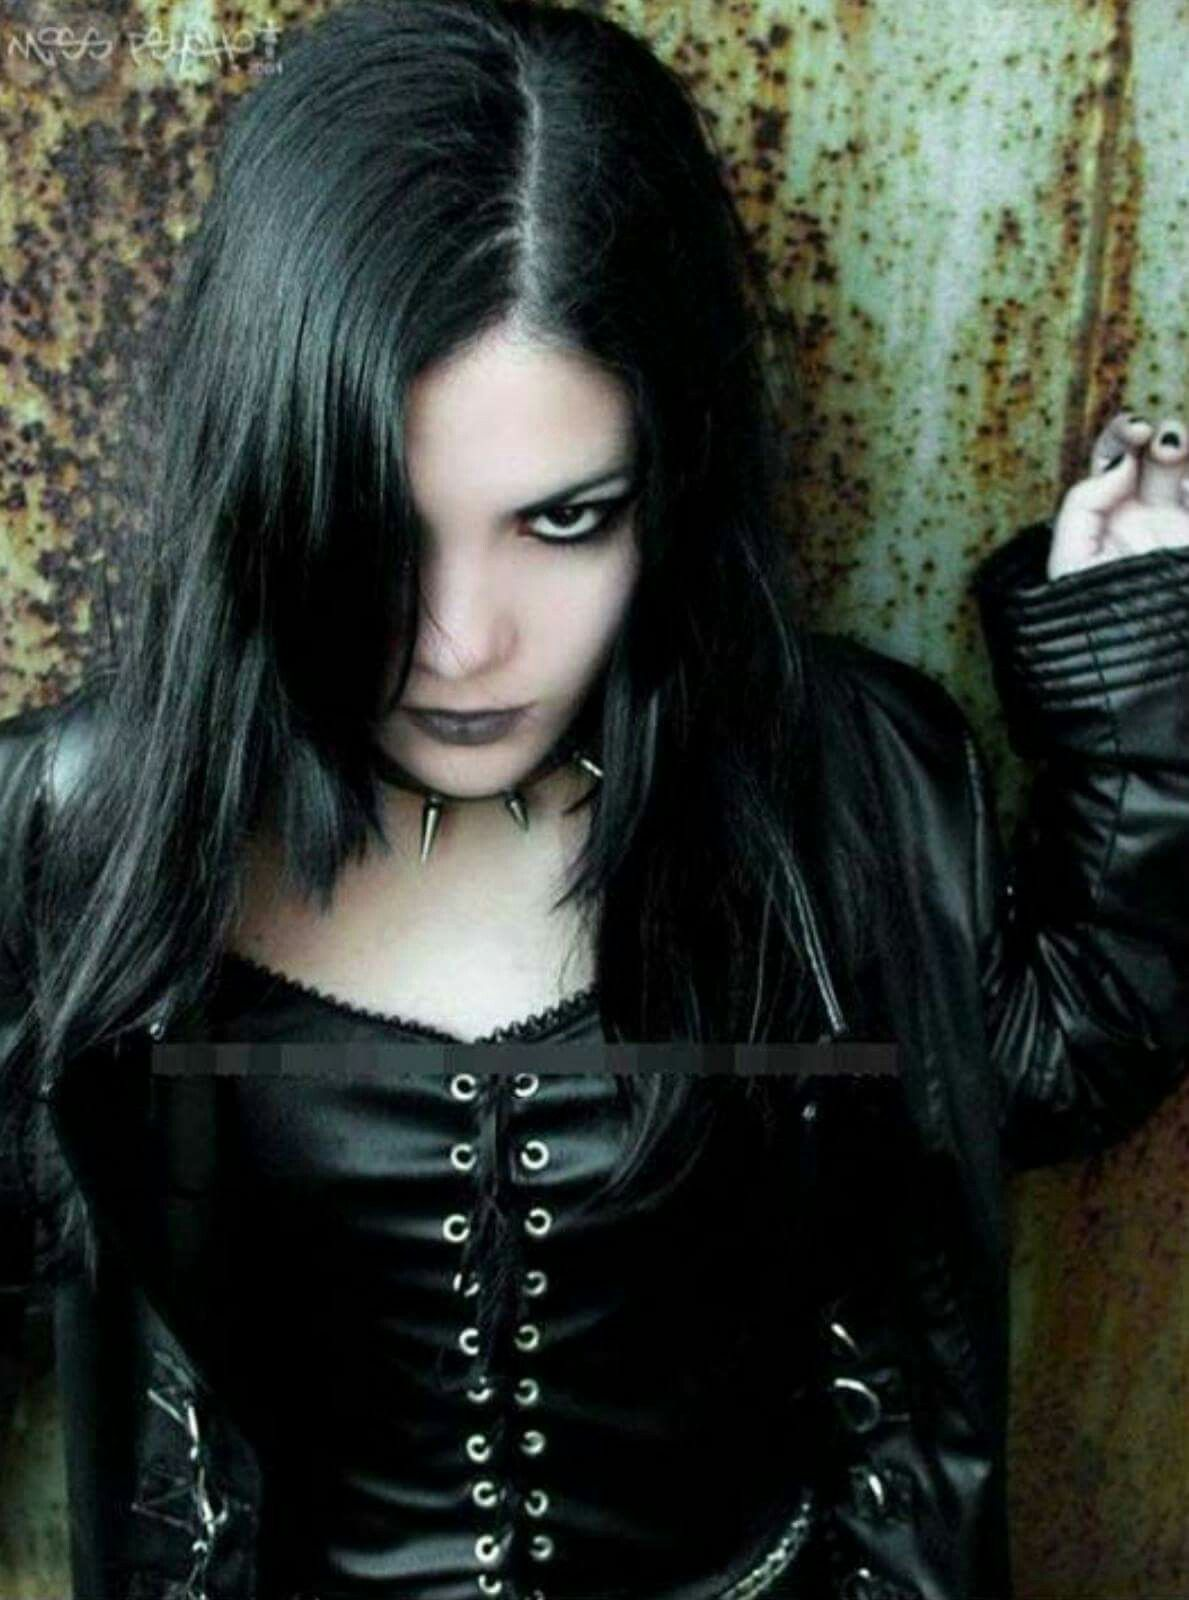 linesex-pictures-of-gothic-girls-girls